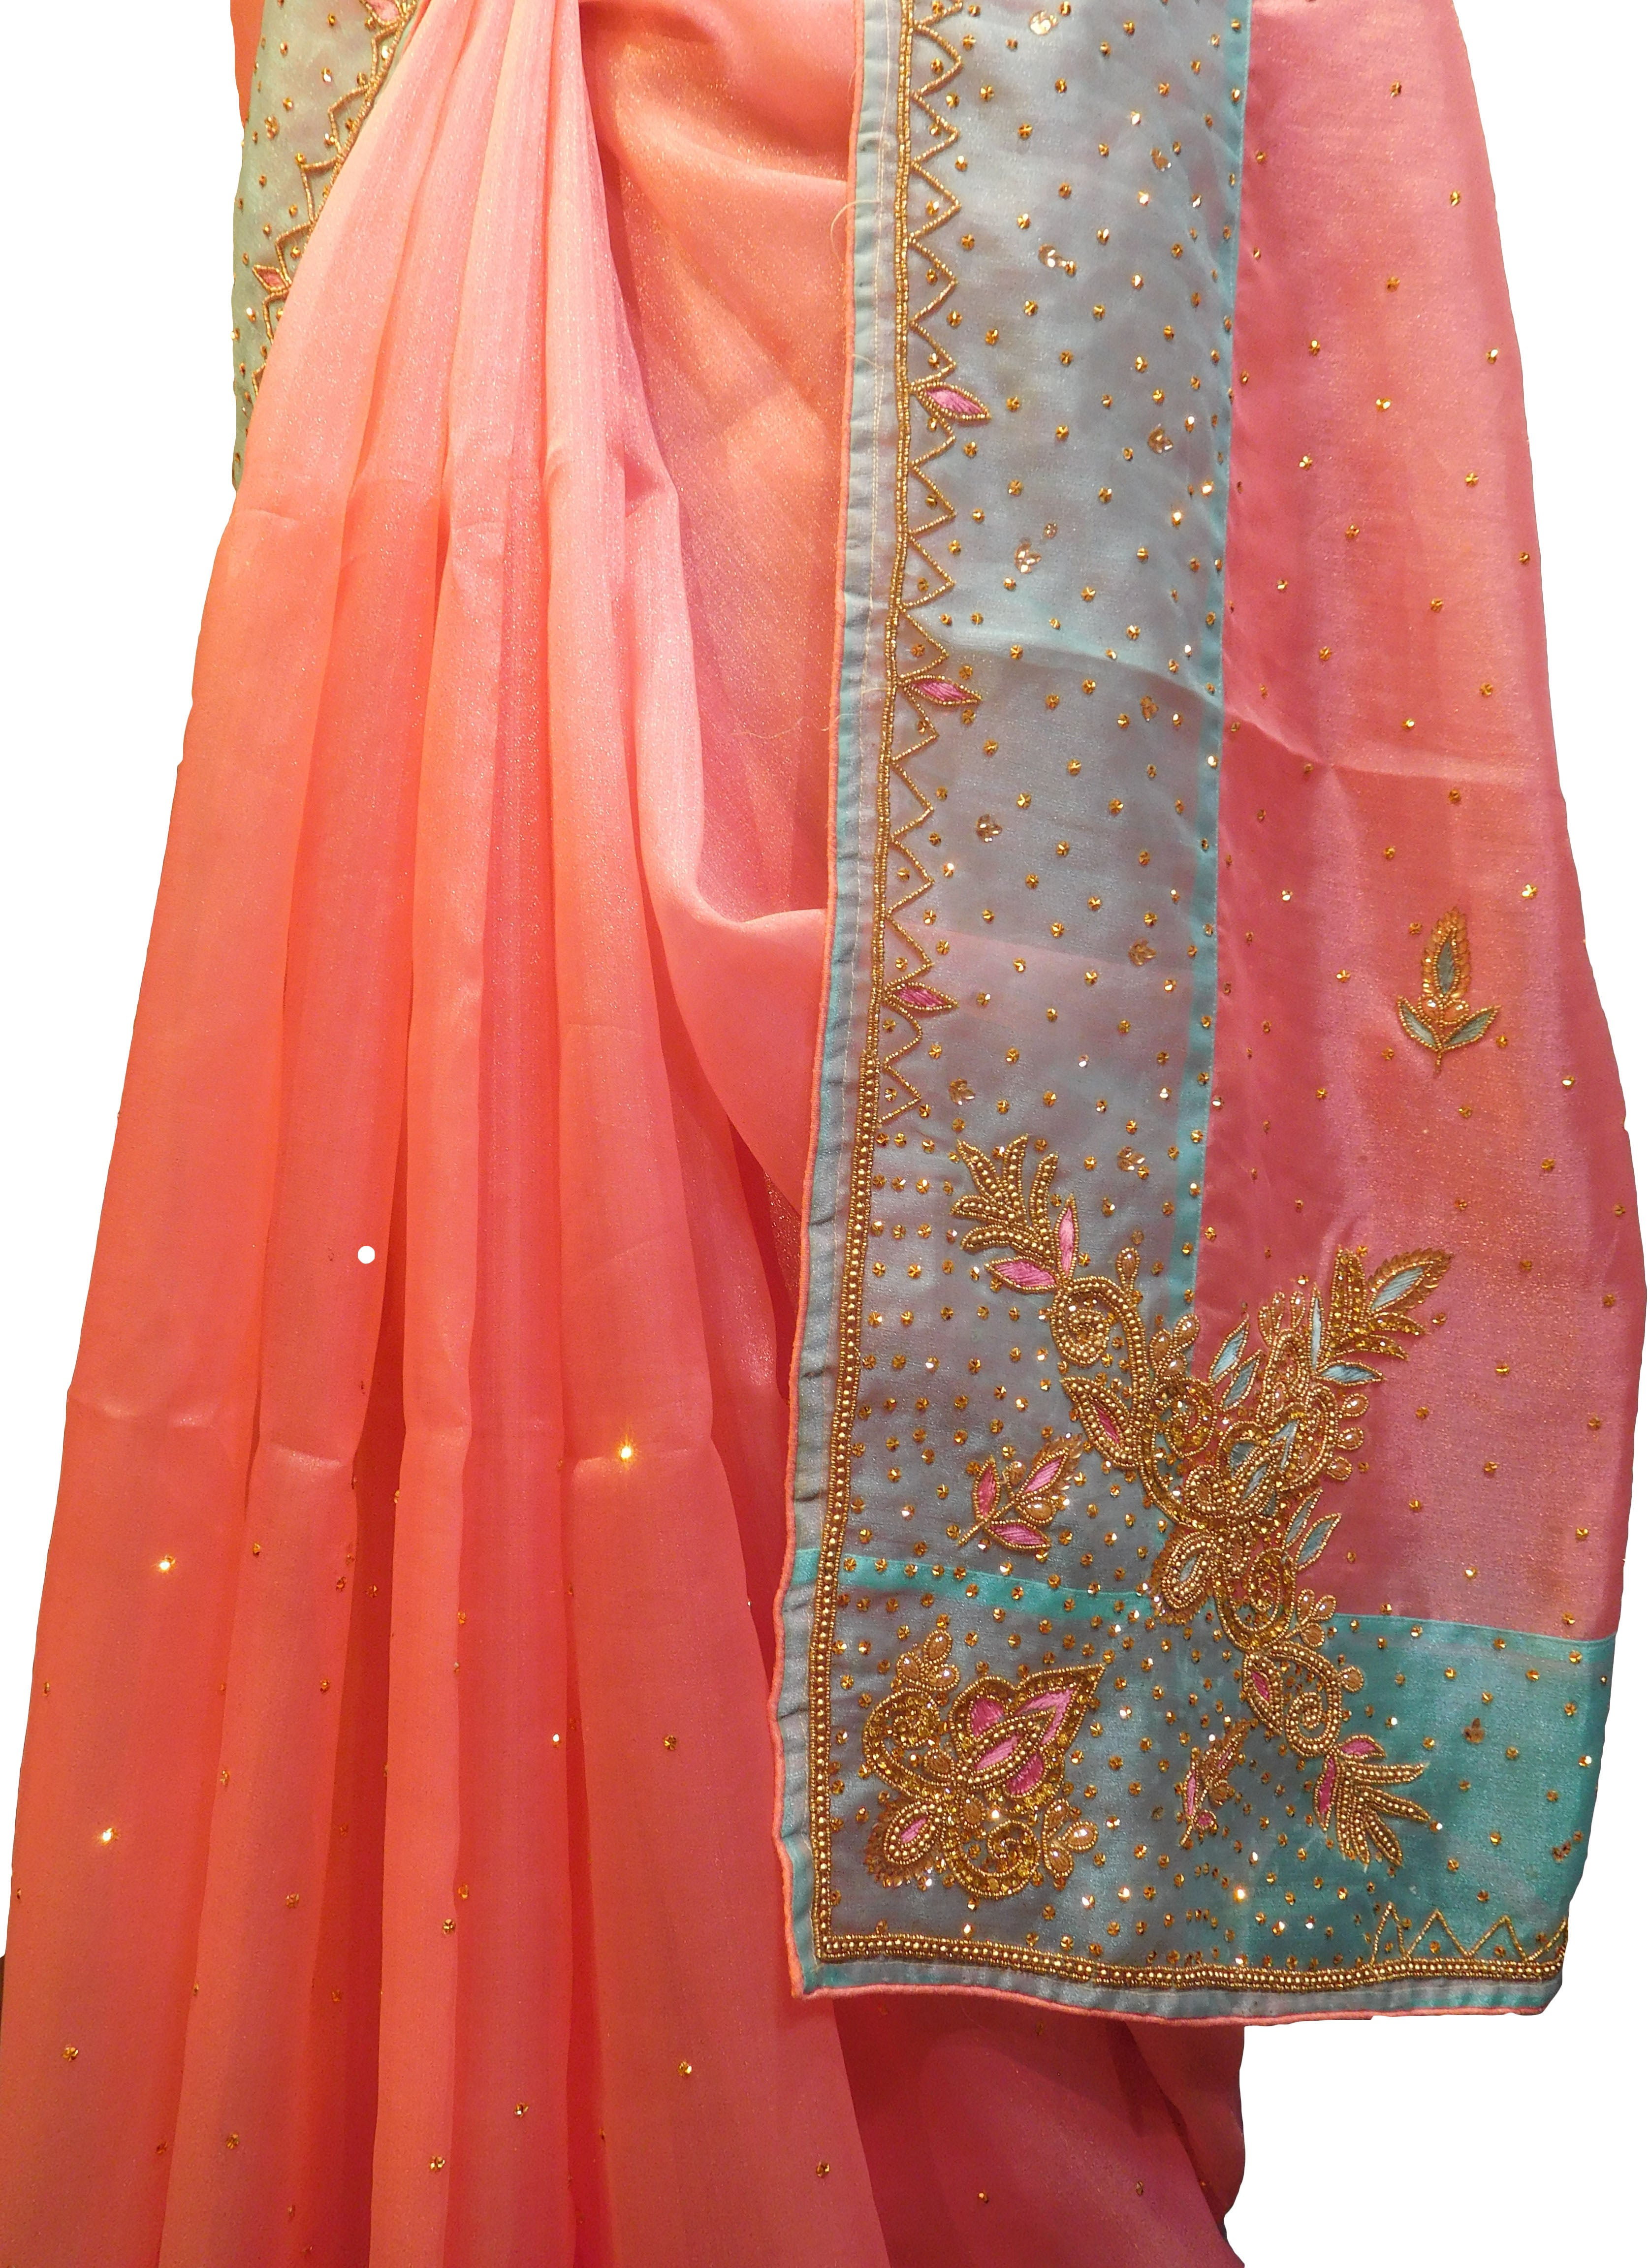 SMSAREE Pink & Turquoise Designer Wedding Partywear Organza Stone Thread & Beads Hand Embroidery Work Bridal Saree Sari With Blouse Piece F098